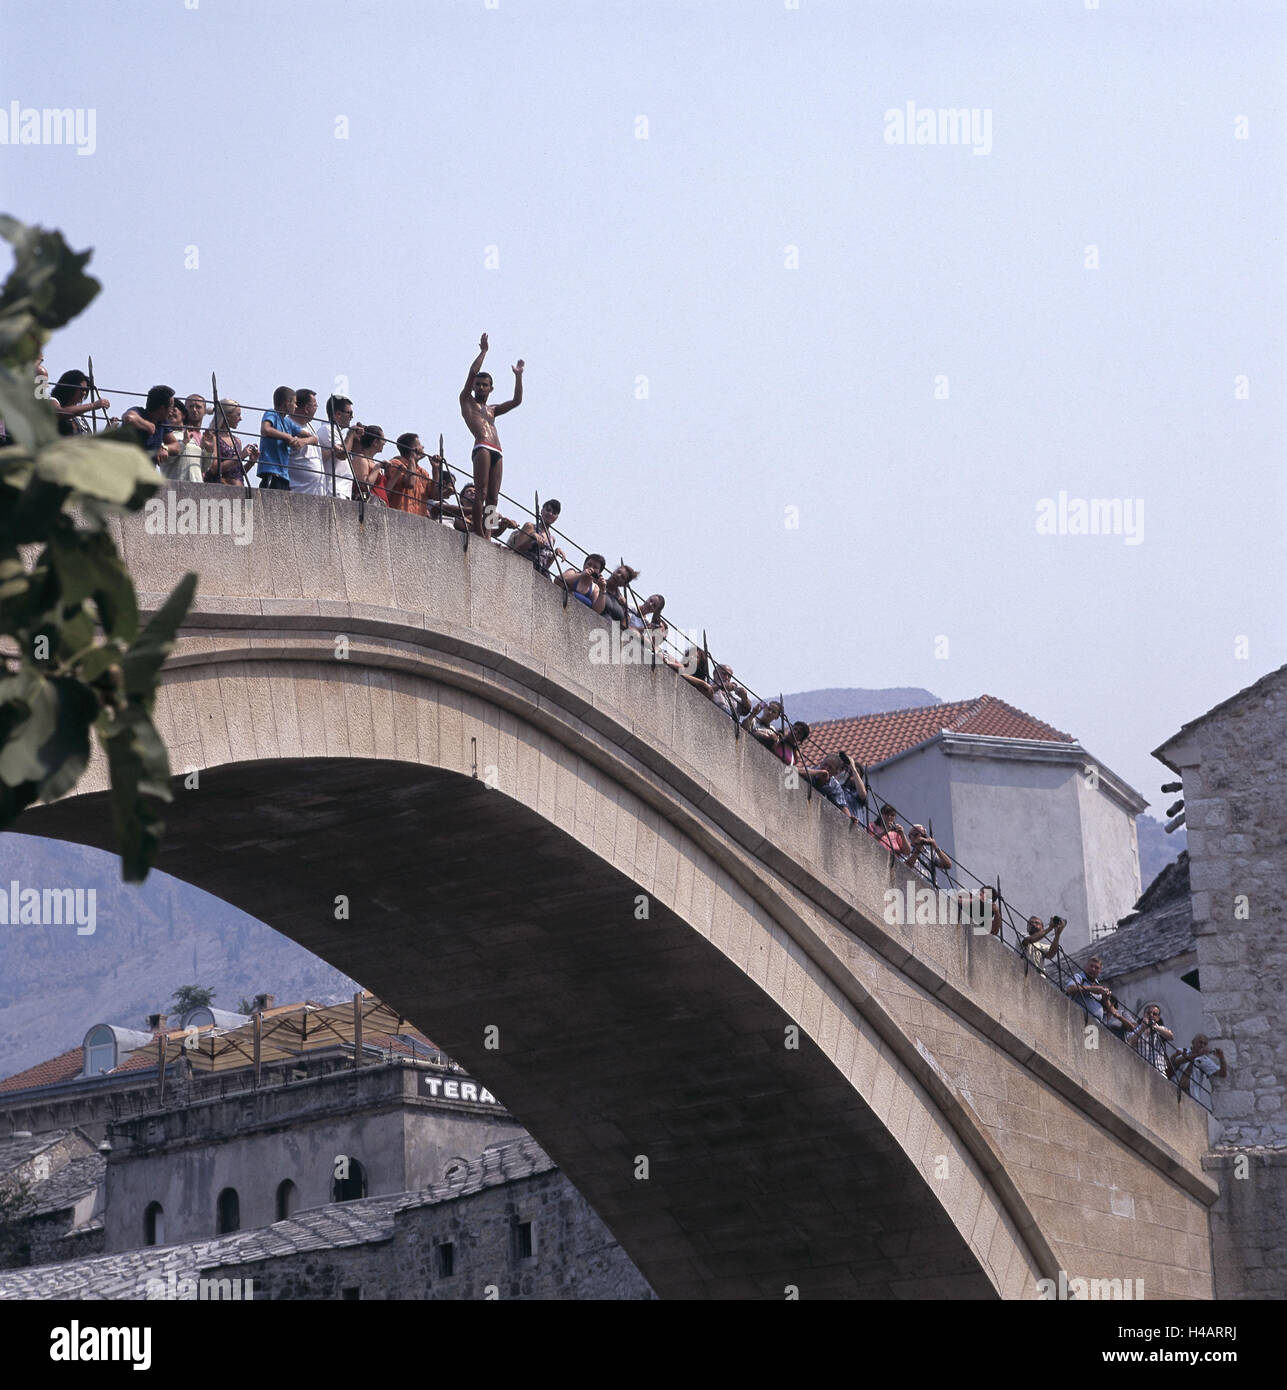 Bosnia-Herzegovina, Mostar, person on the old bridge 'Stari Most', - Stock Image